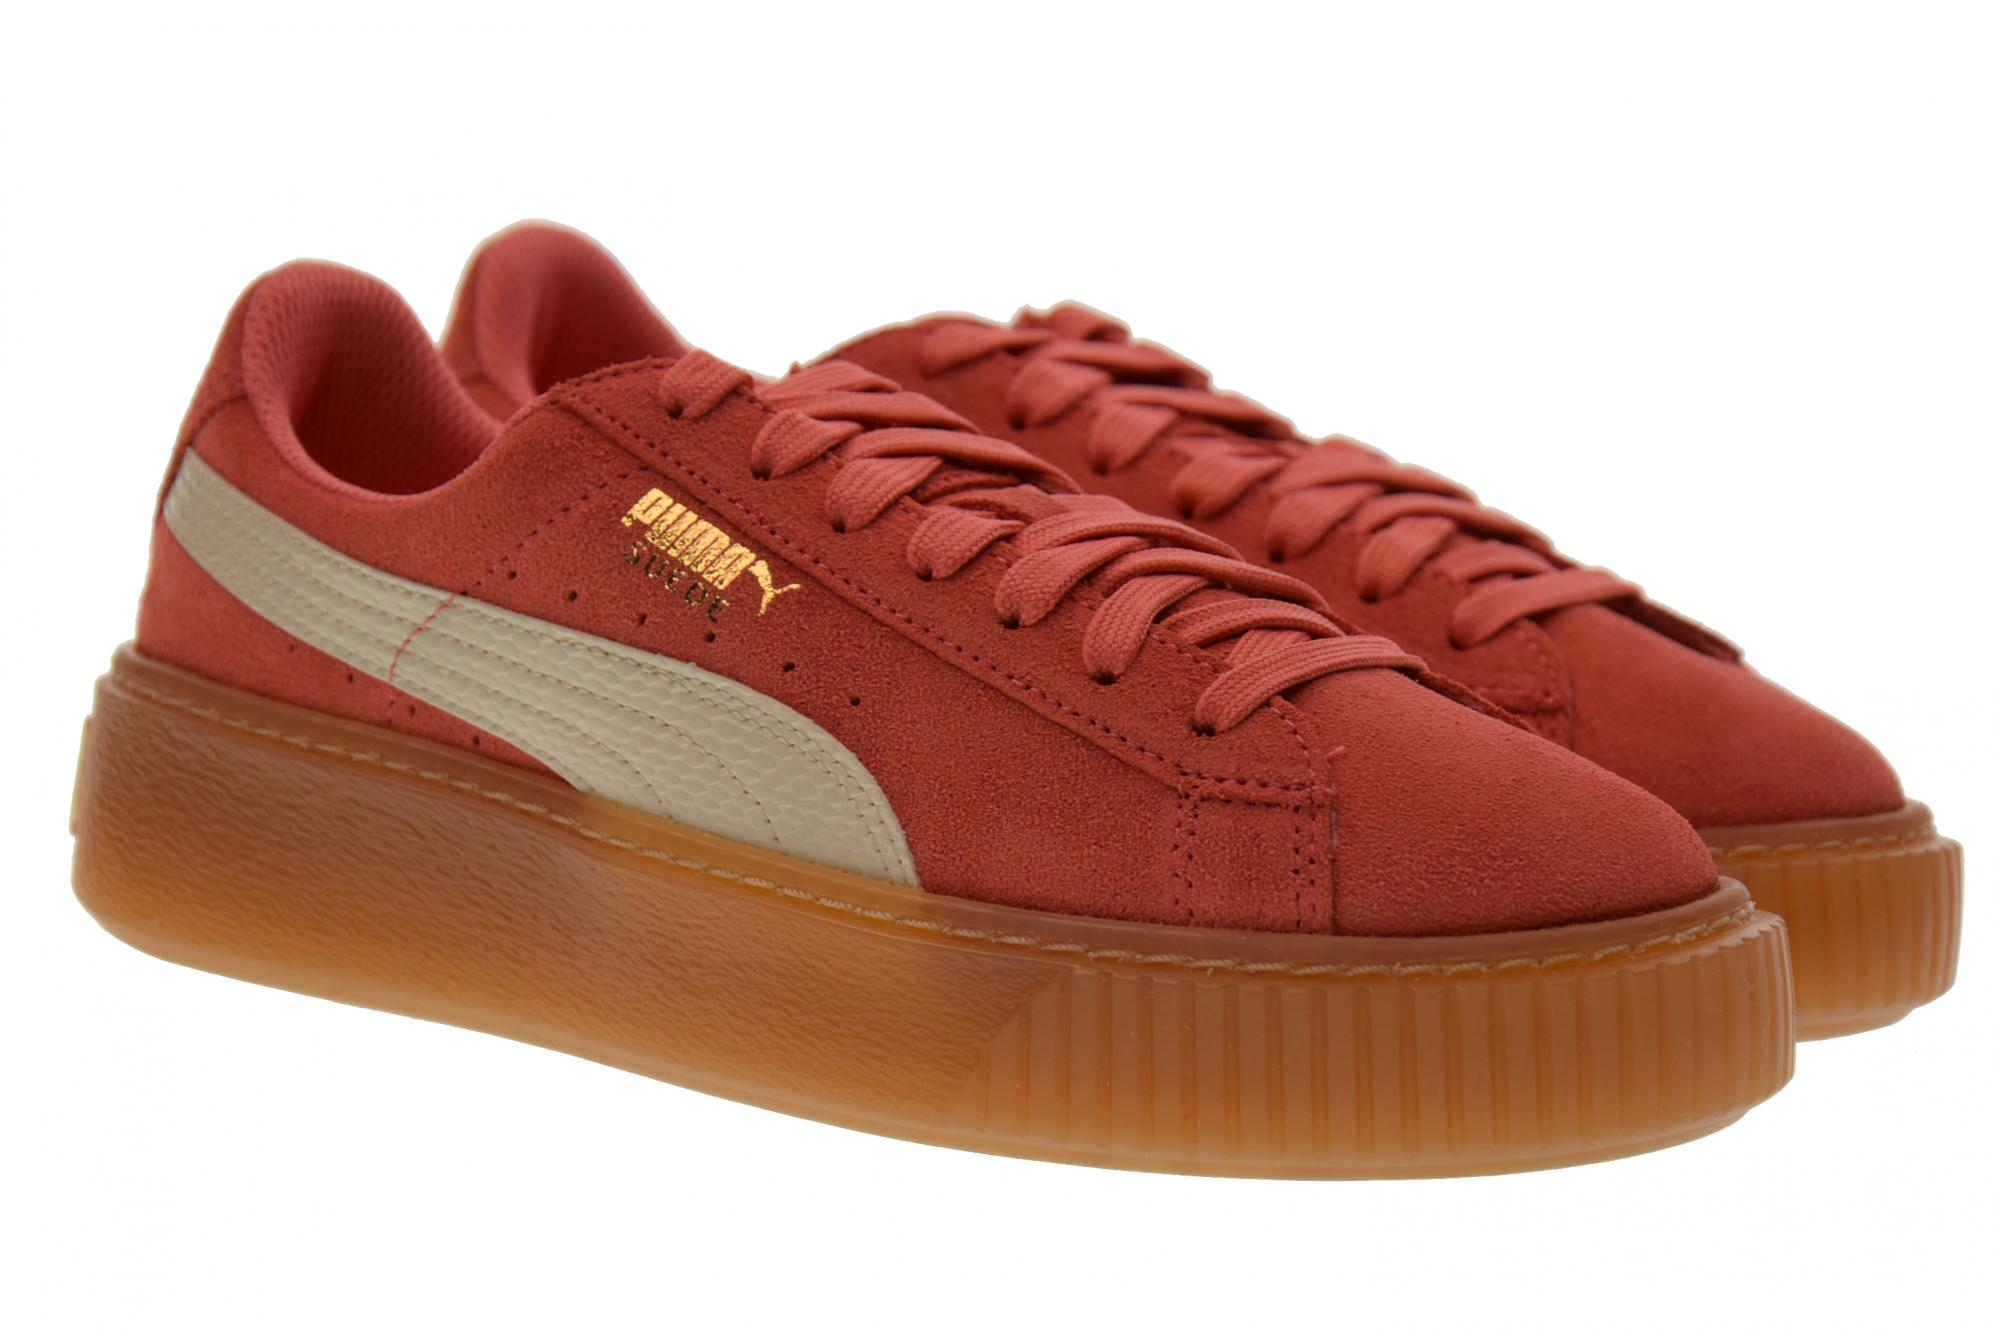 Puma P18us shoes woman low sneakers 3639063 04 SUEDE PLATFORM SNK JR